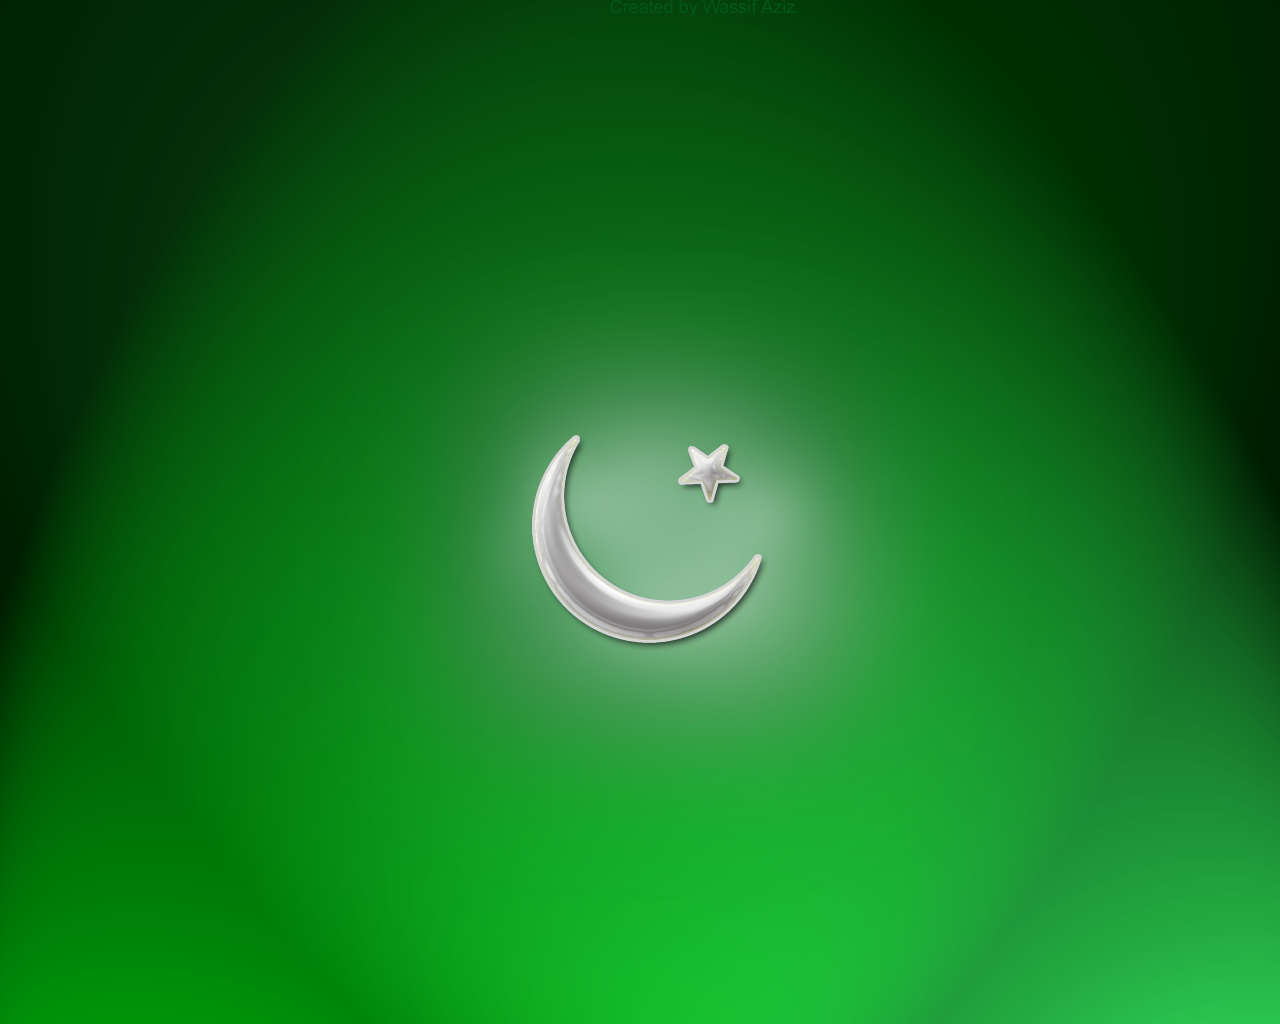 pakistani flag high resolution hd wallpapers download 1280x1024